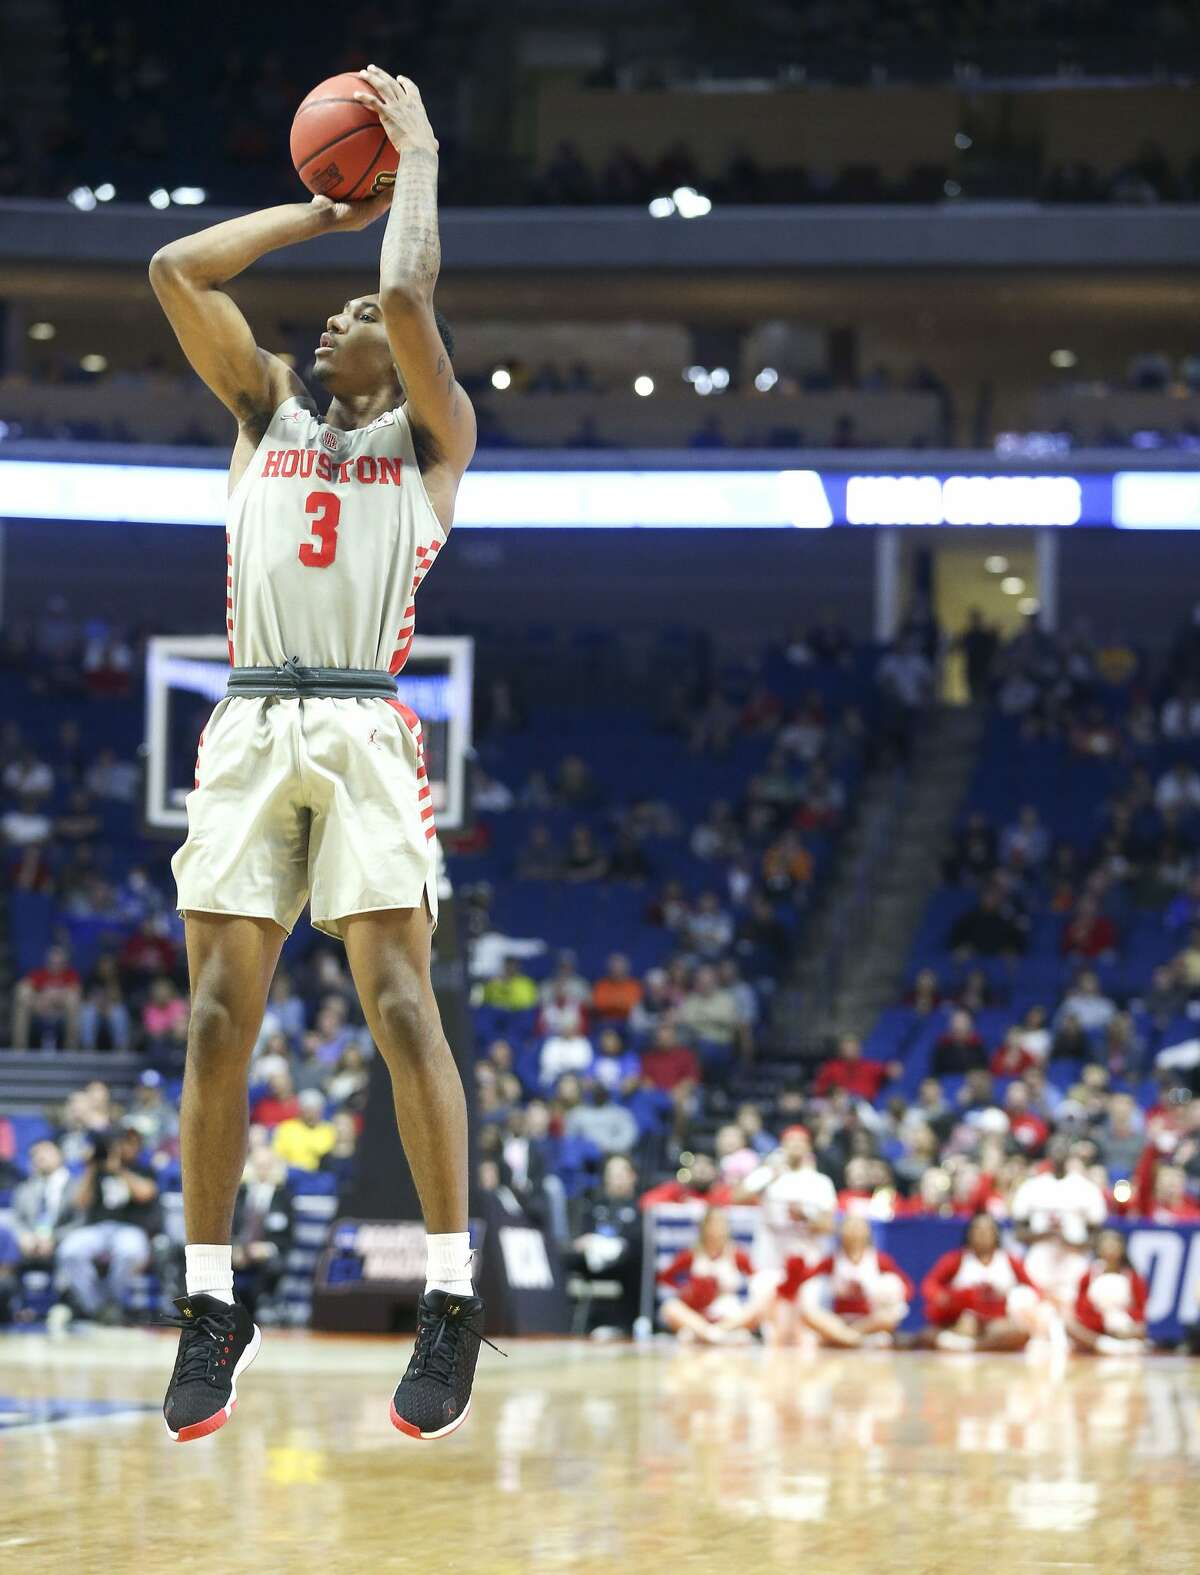 Houston Cougars guard Armoni Brooks (3) puts up three-point-shot against Ohio State during the second round of NCAA playoffs at BOK Center in Tulsa on Sunday, March 24, 2019.